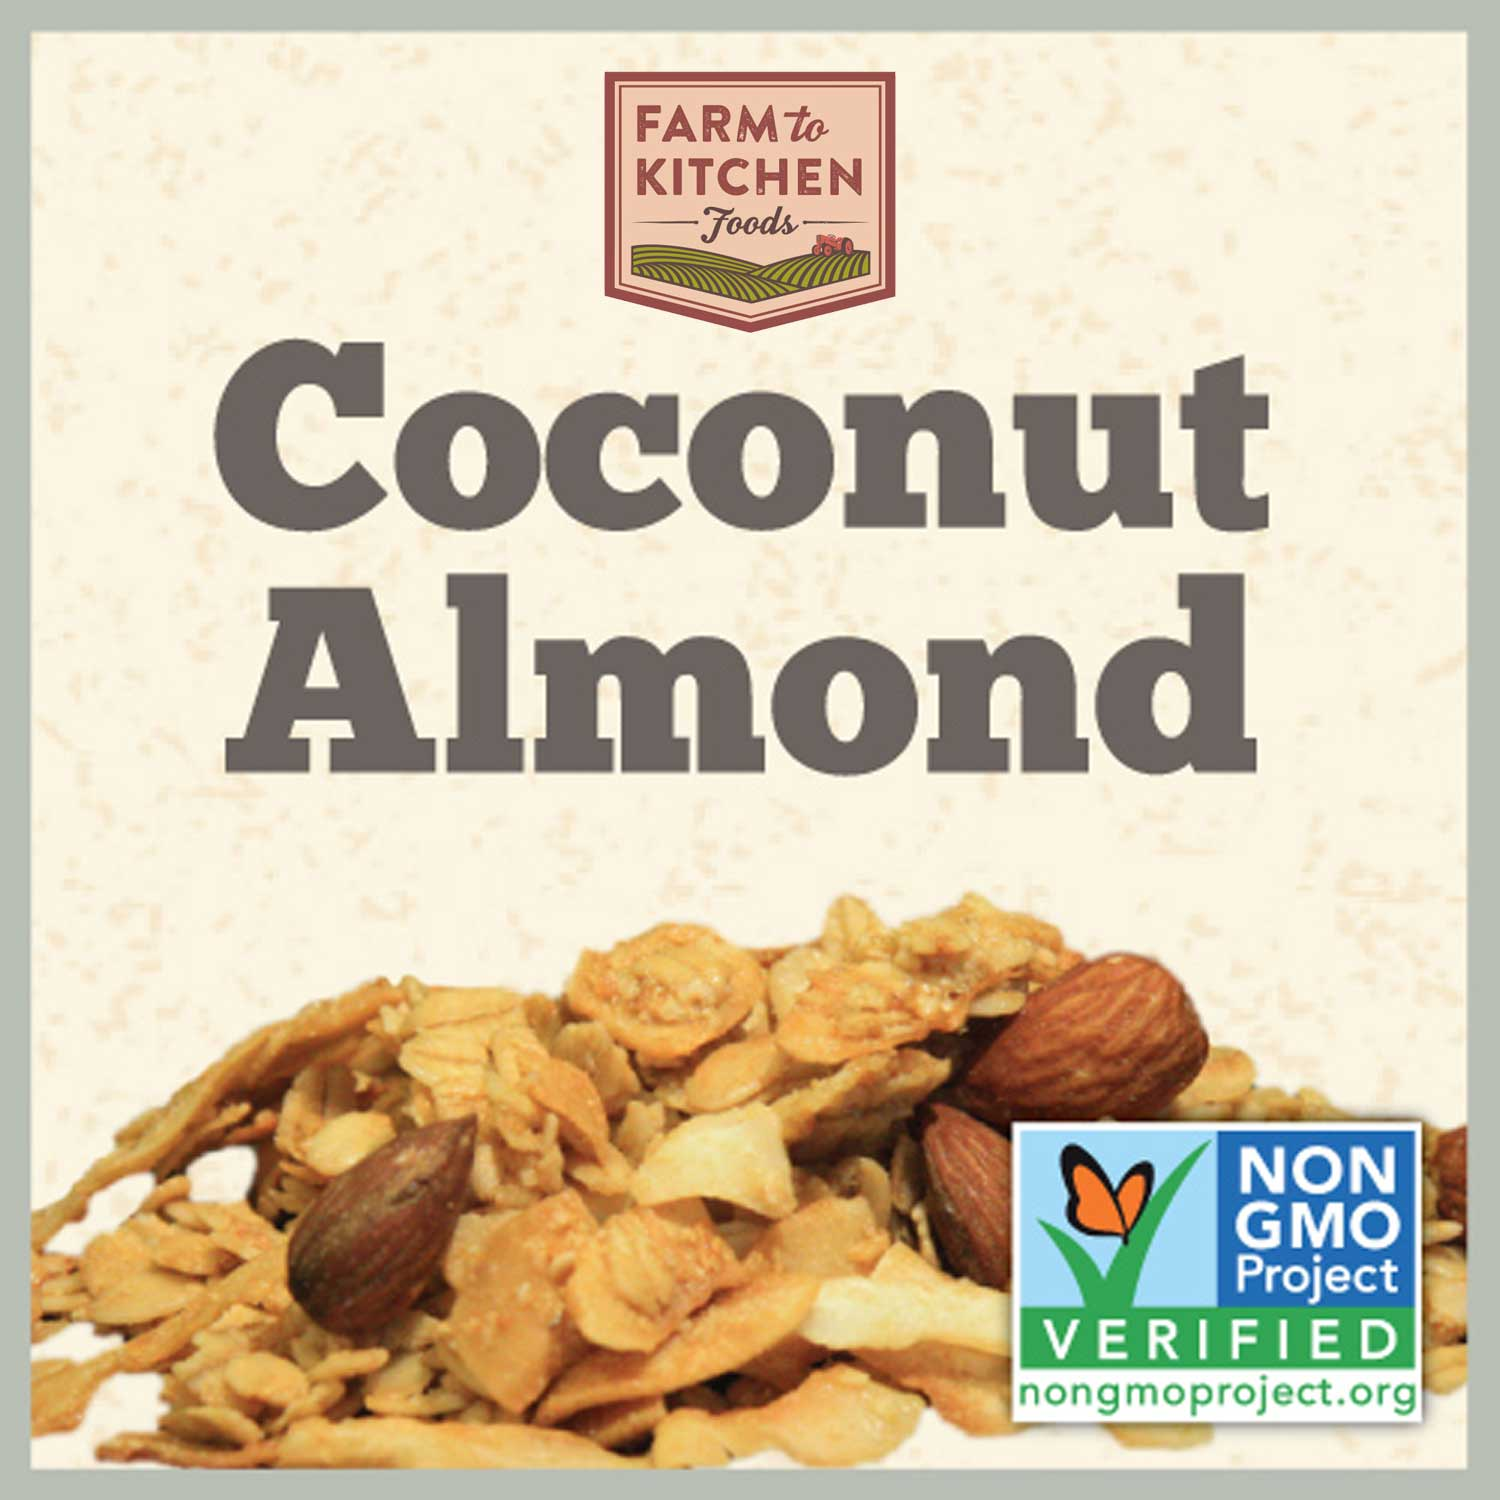 Granola, Coconut Almond